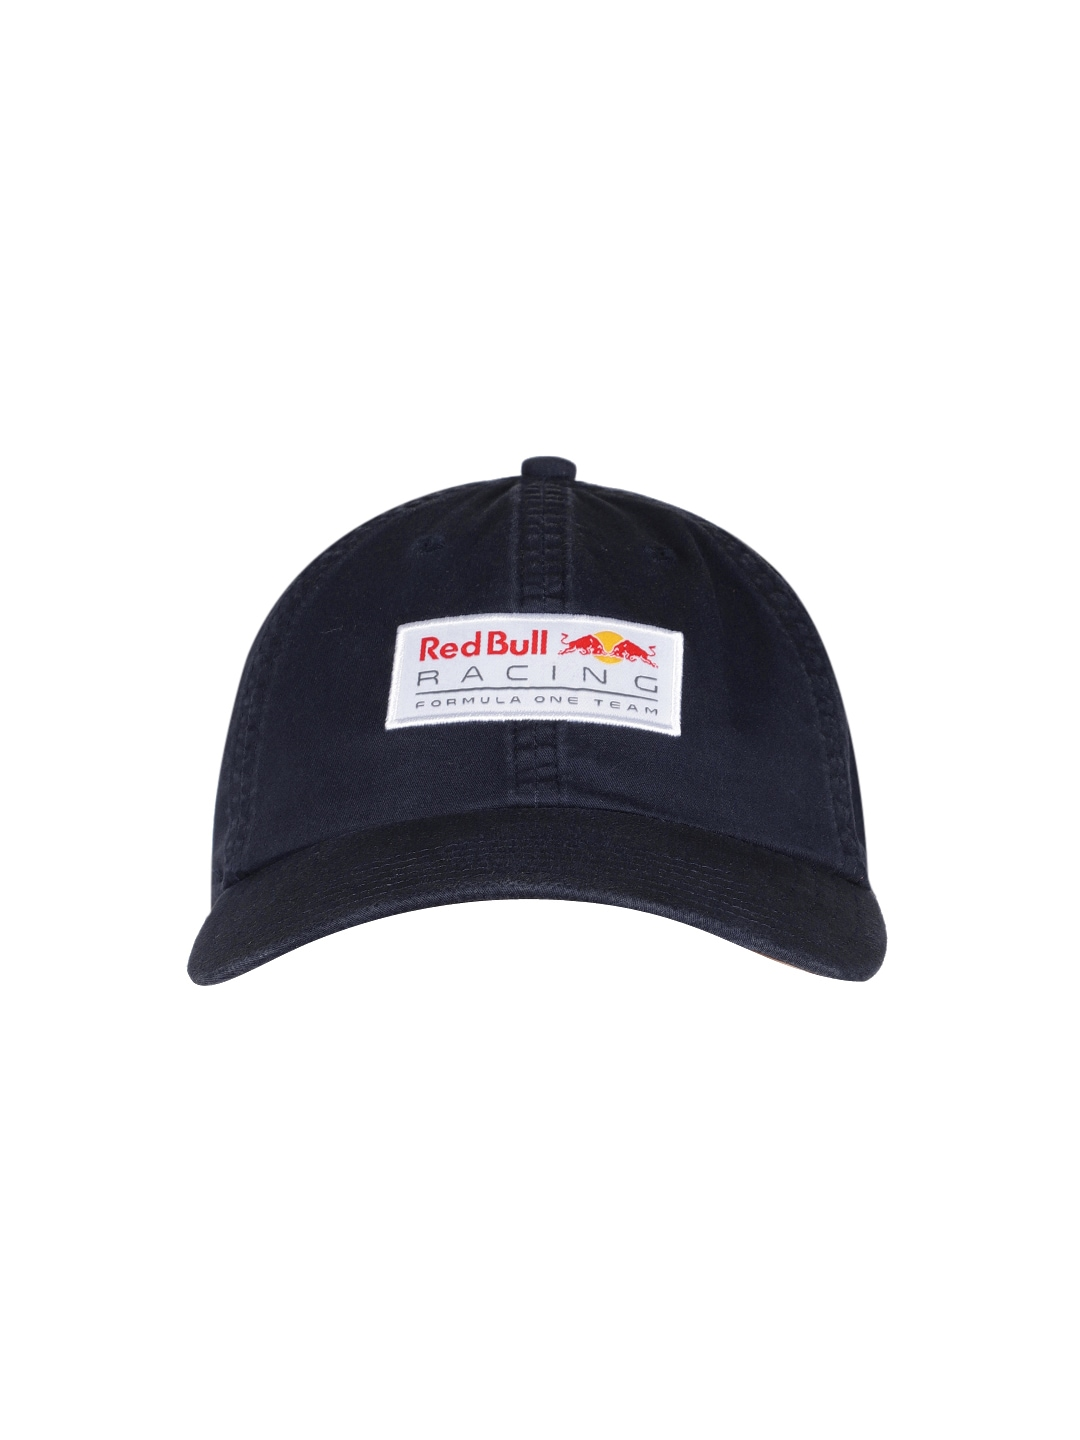 7b852bc5166 Hats   Caps For Men - Shop Mens Caps   Hats Online at best price ...